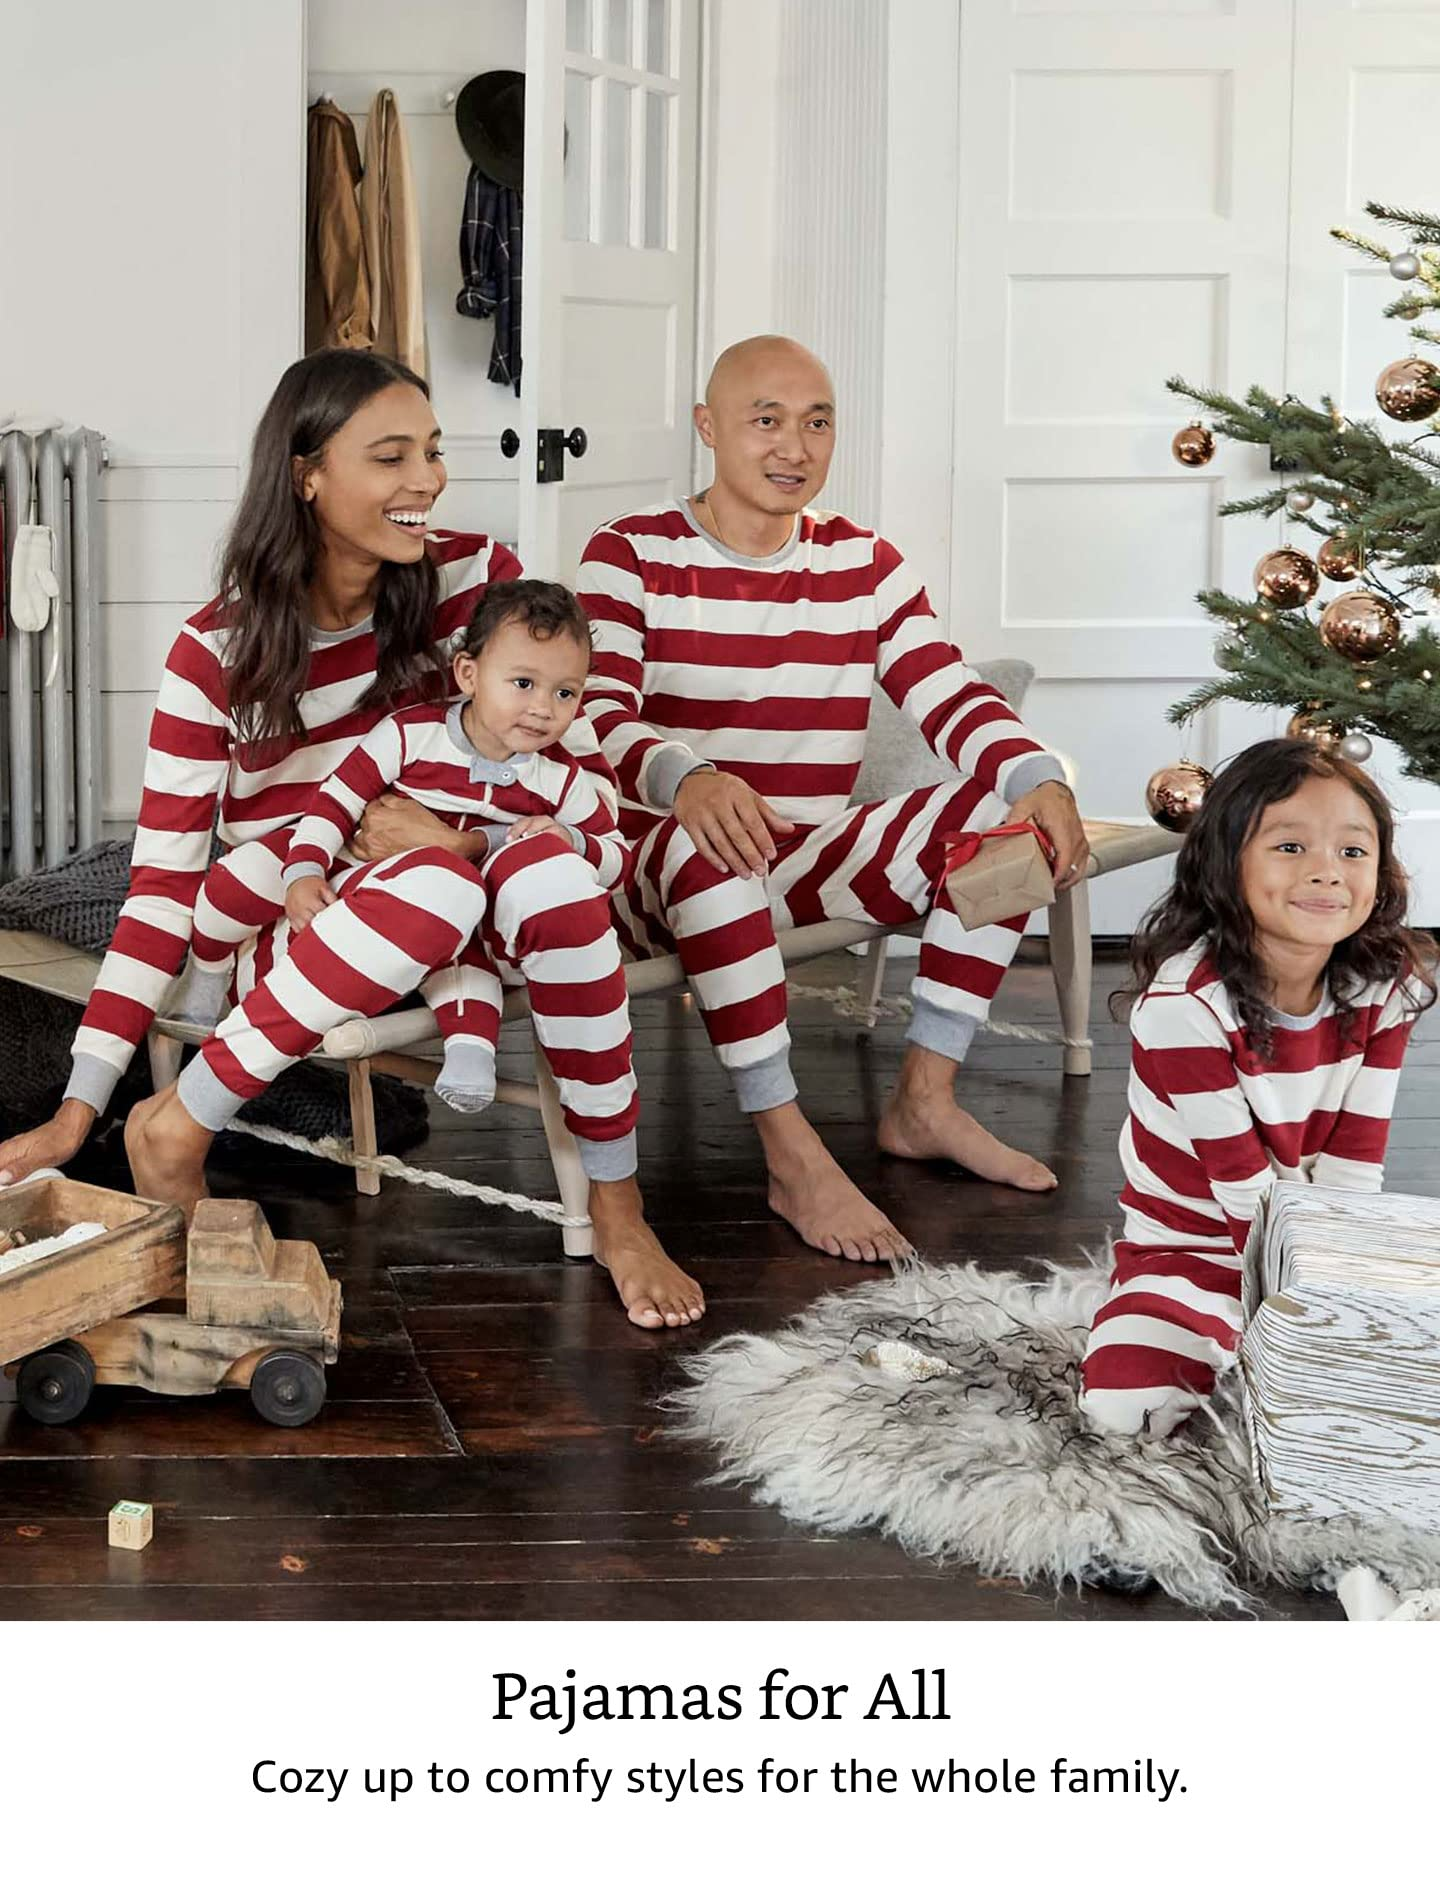 Pajamas for all